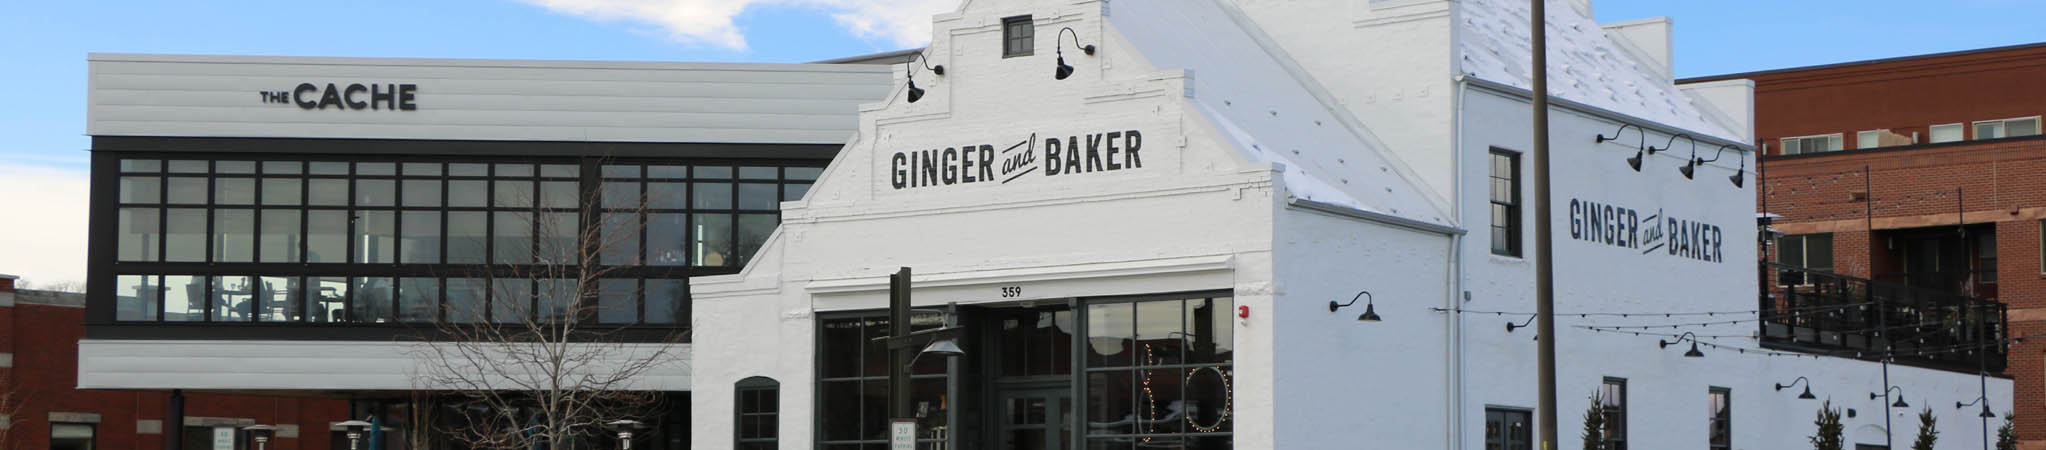 Ginger & Baker     Ft. Collins, Colorado